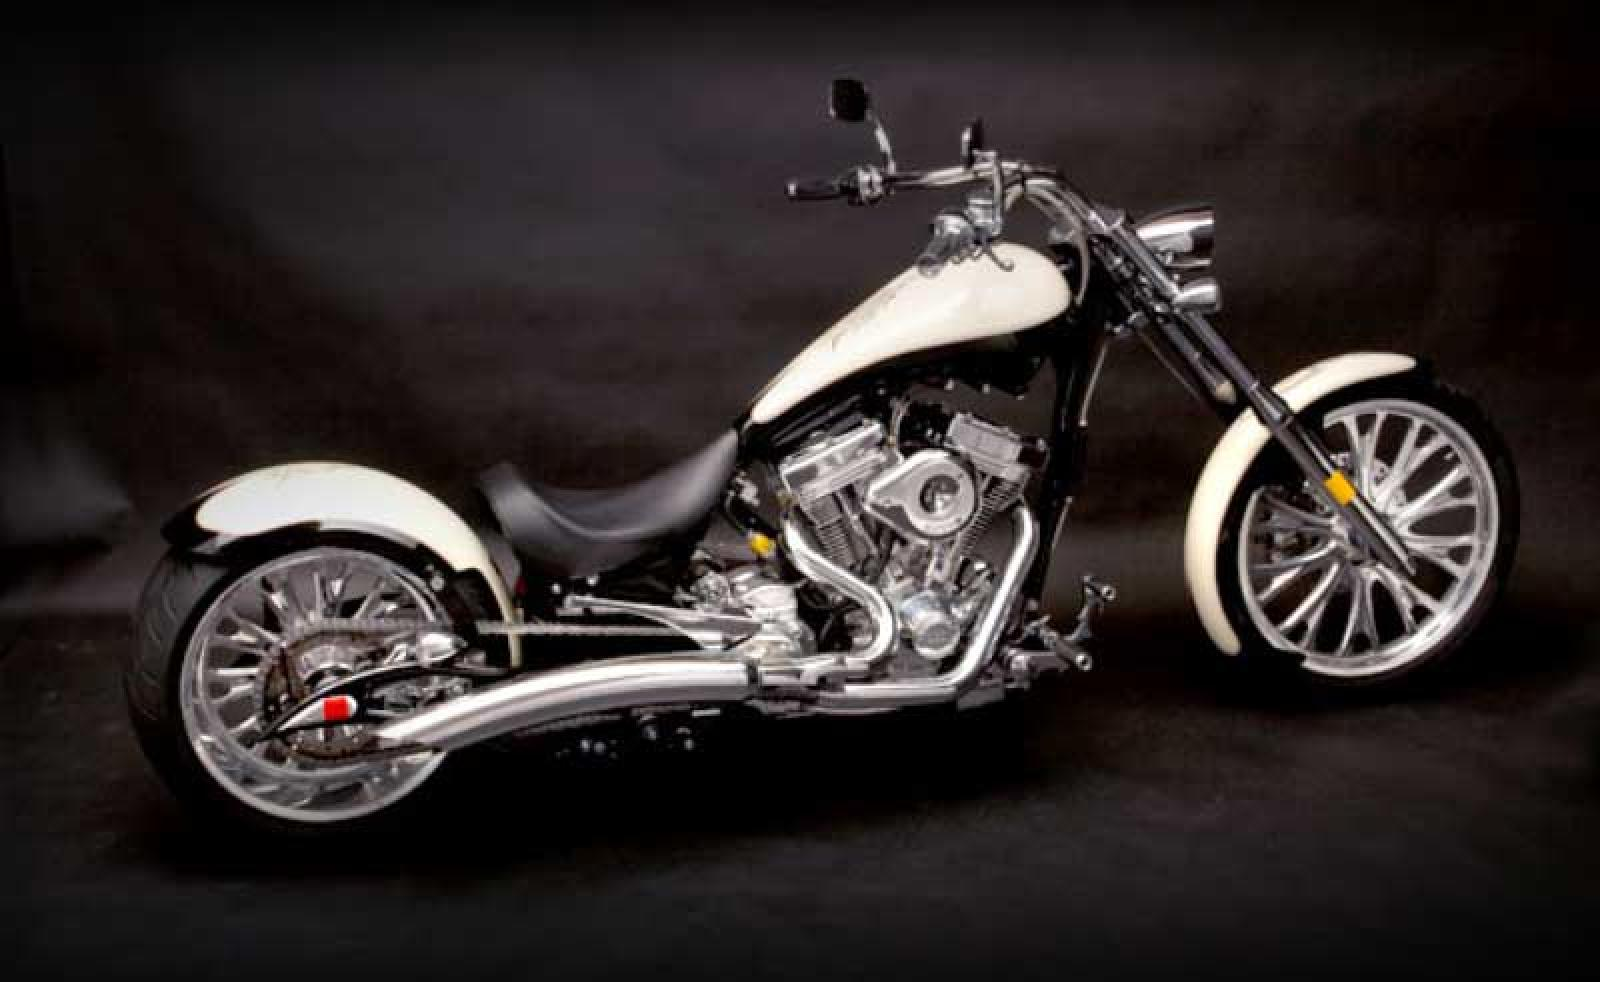 Big Bear Choppers Venom 100 Smooth EFI 2010 images #63833